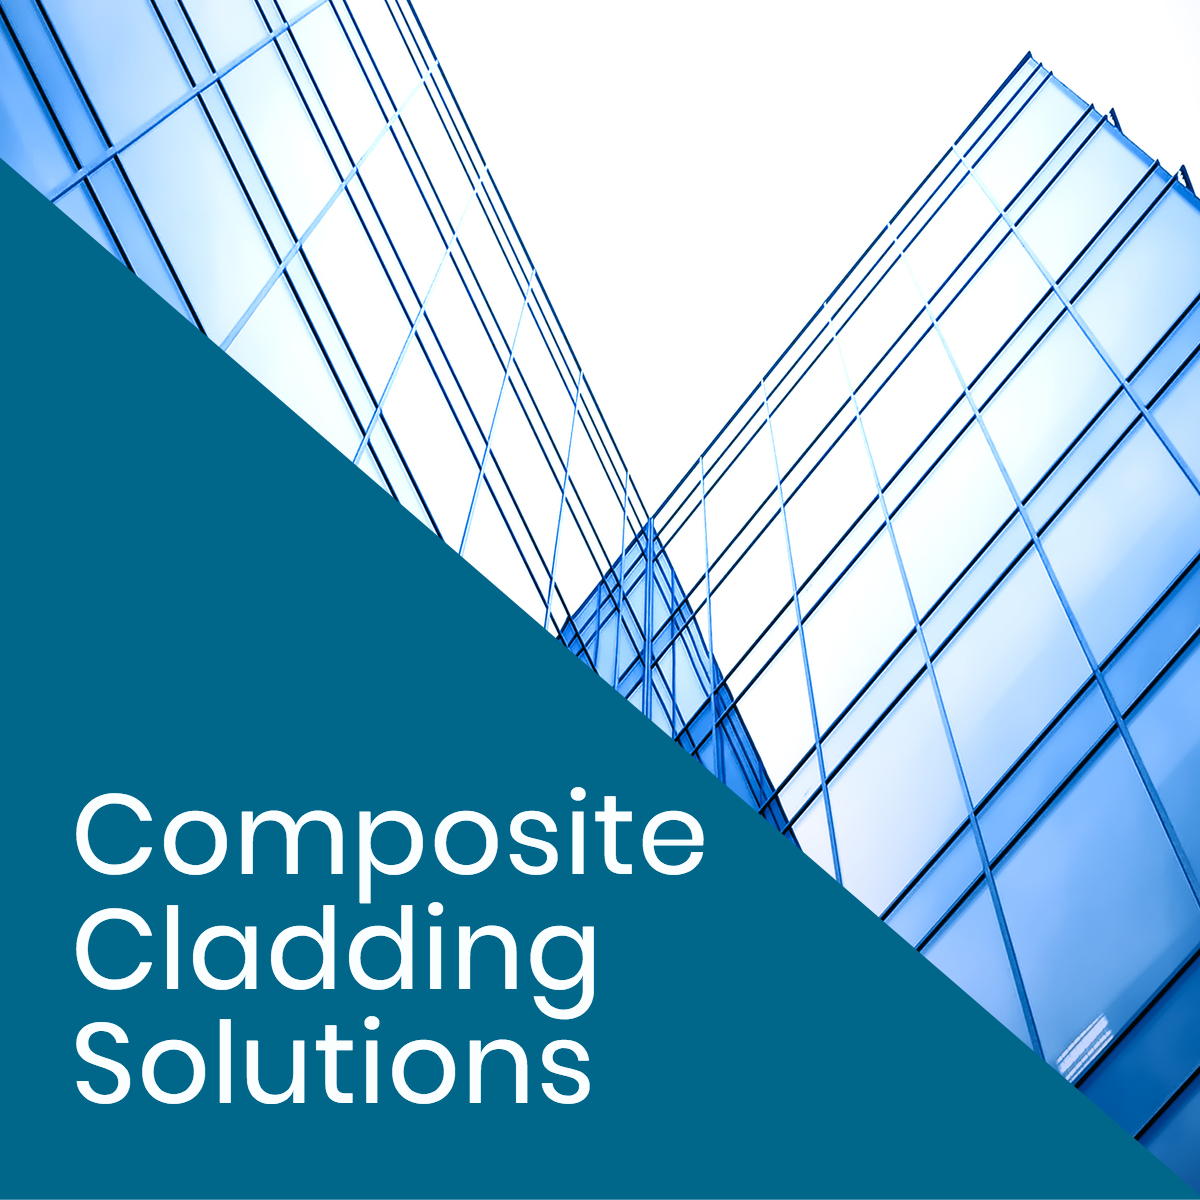 Composite Cladding Solutions Tile.jpg